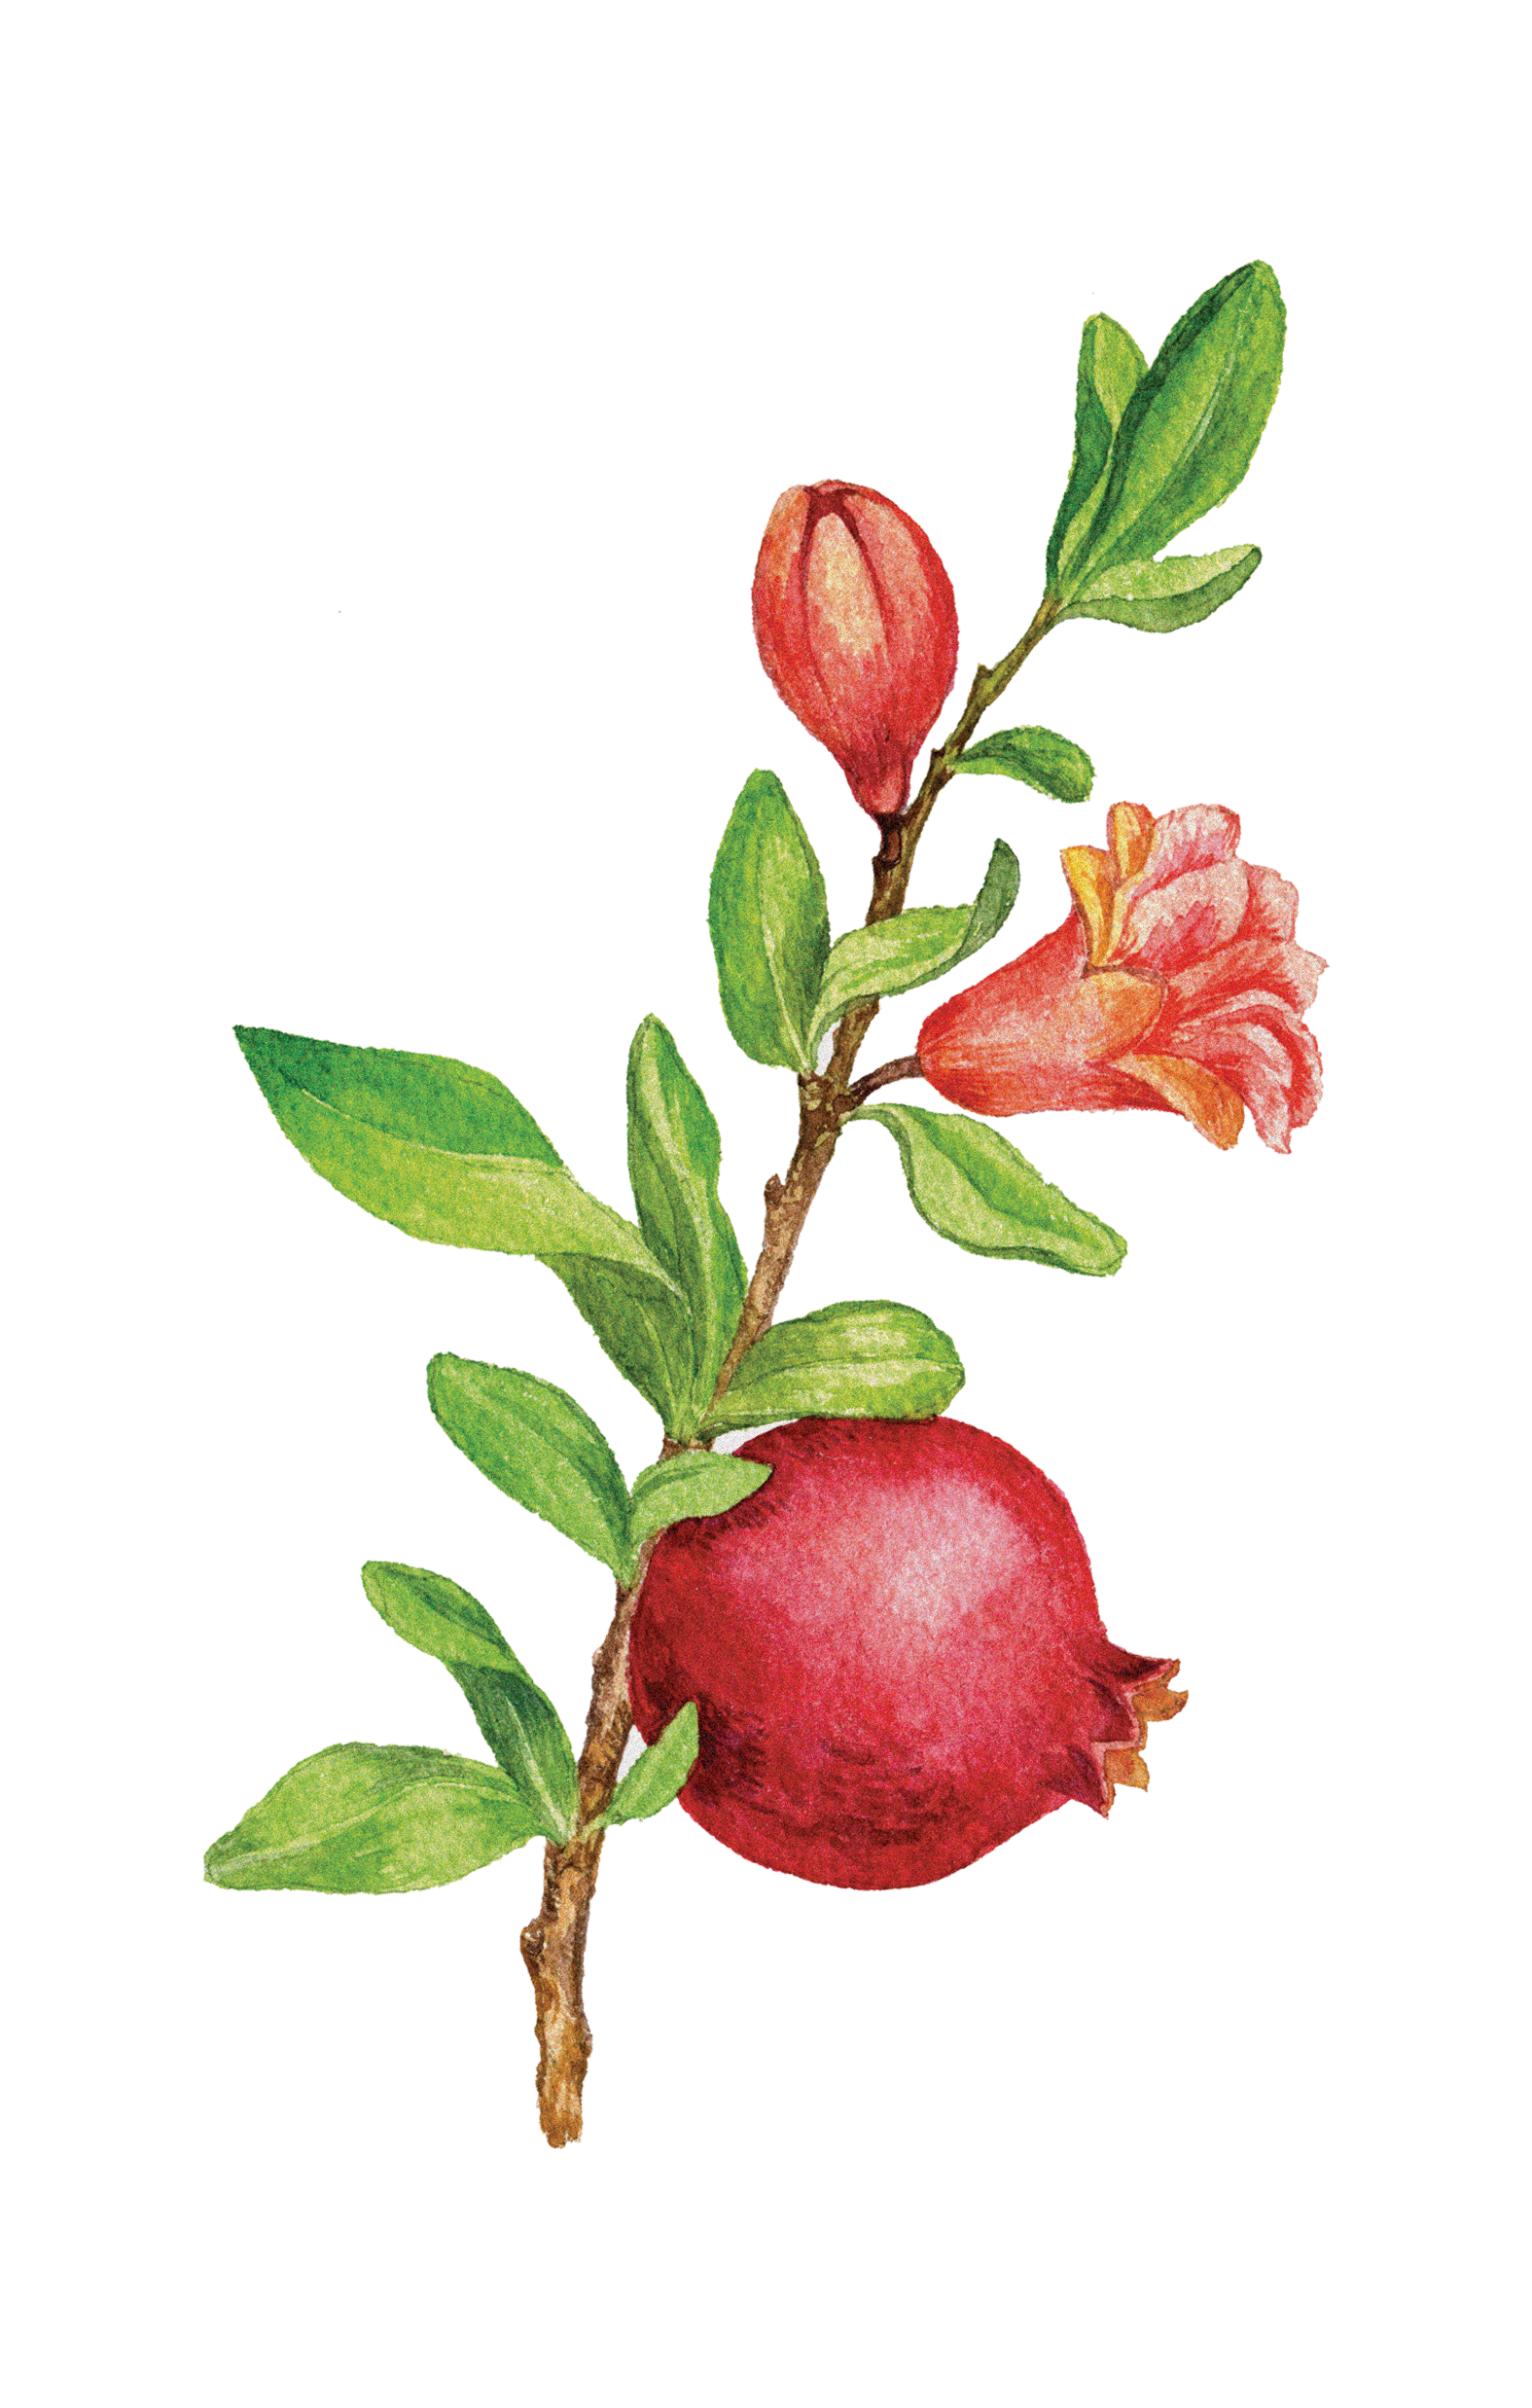 Pomegranate tree png. Friends of sheba medical